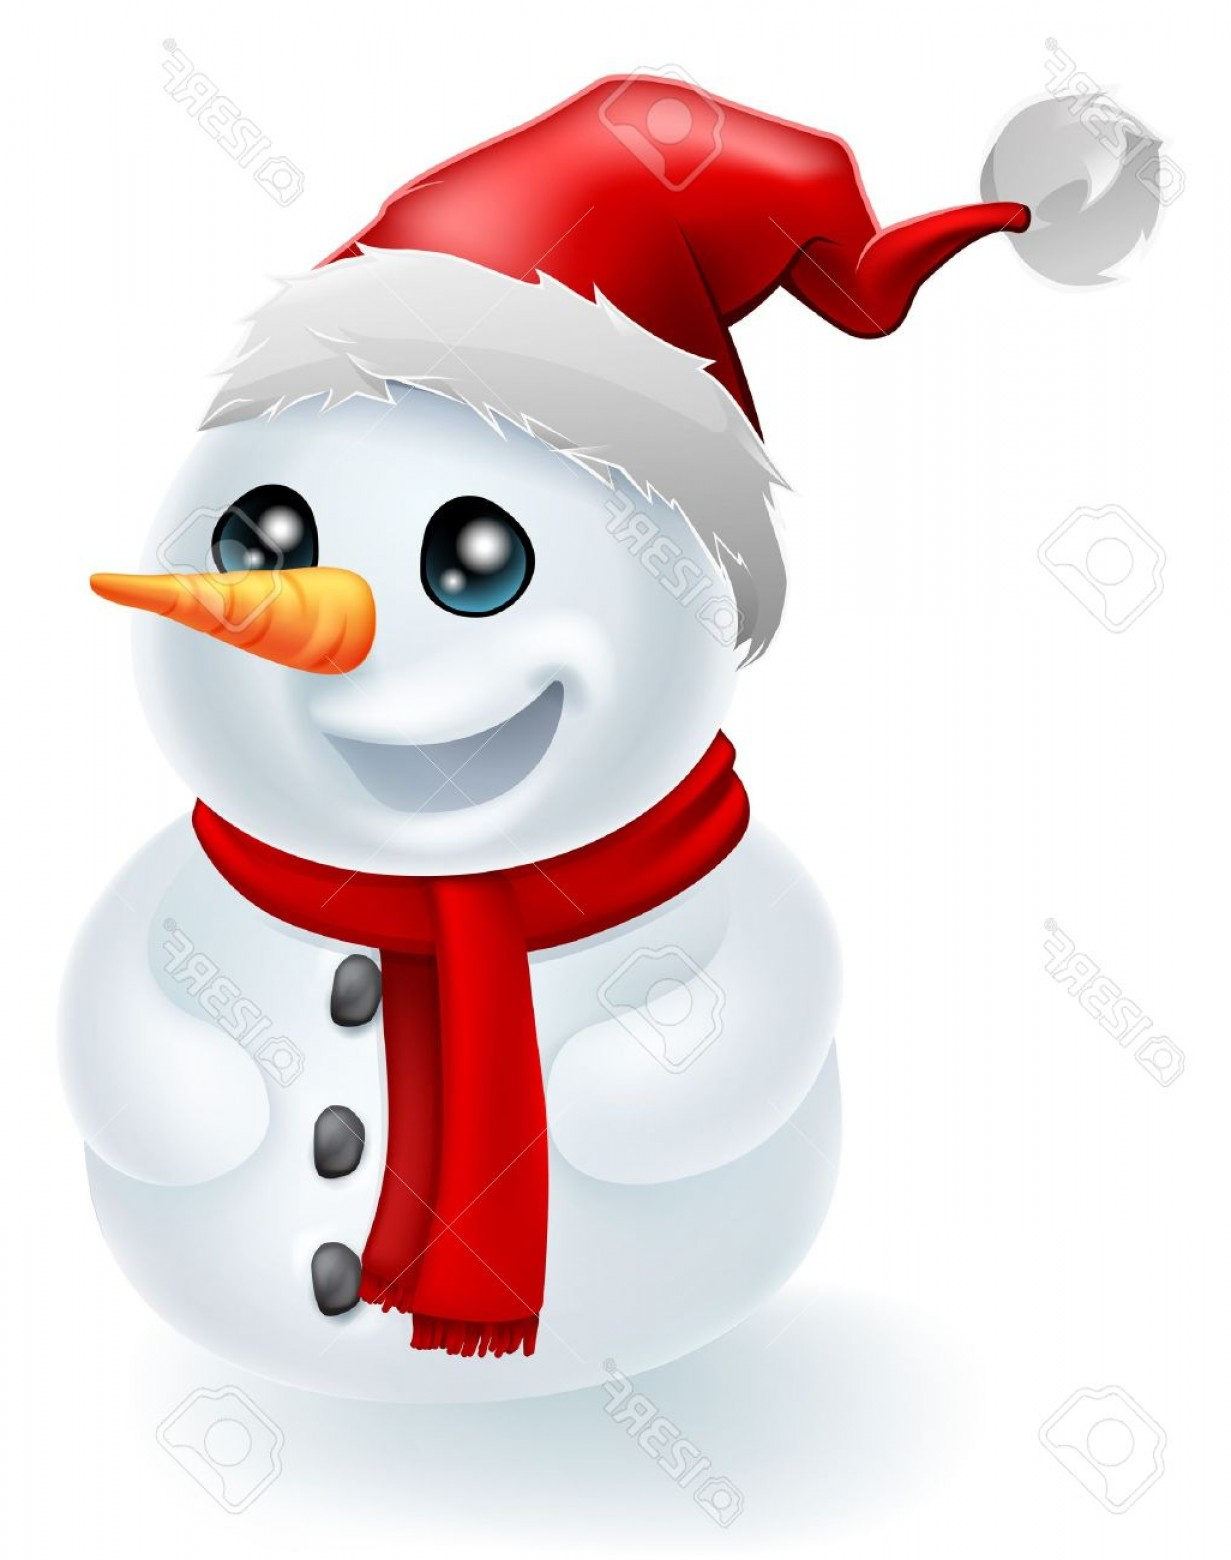 No Hat With Snowman Vector: Photochristmas Snowman Wearing A Santa Hat And Red Scarf